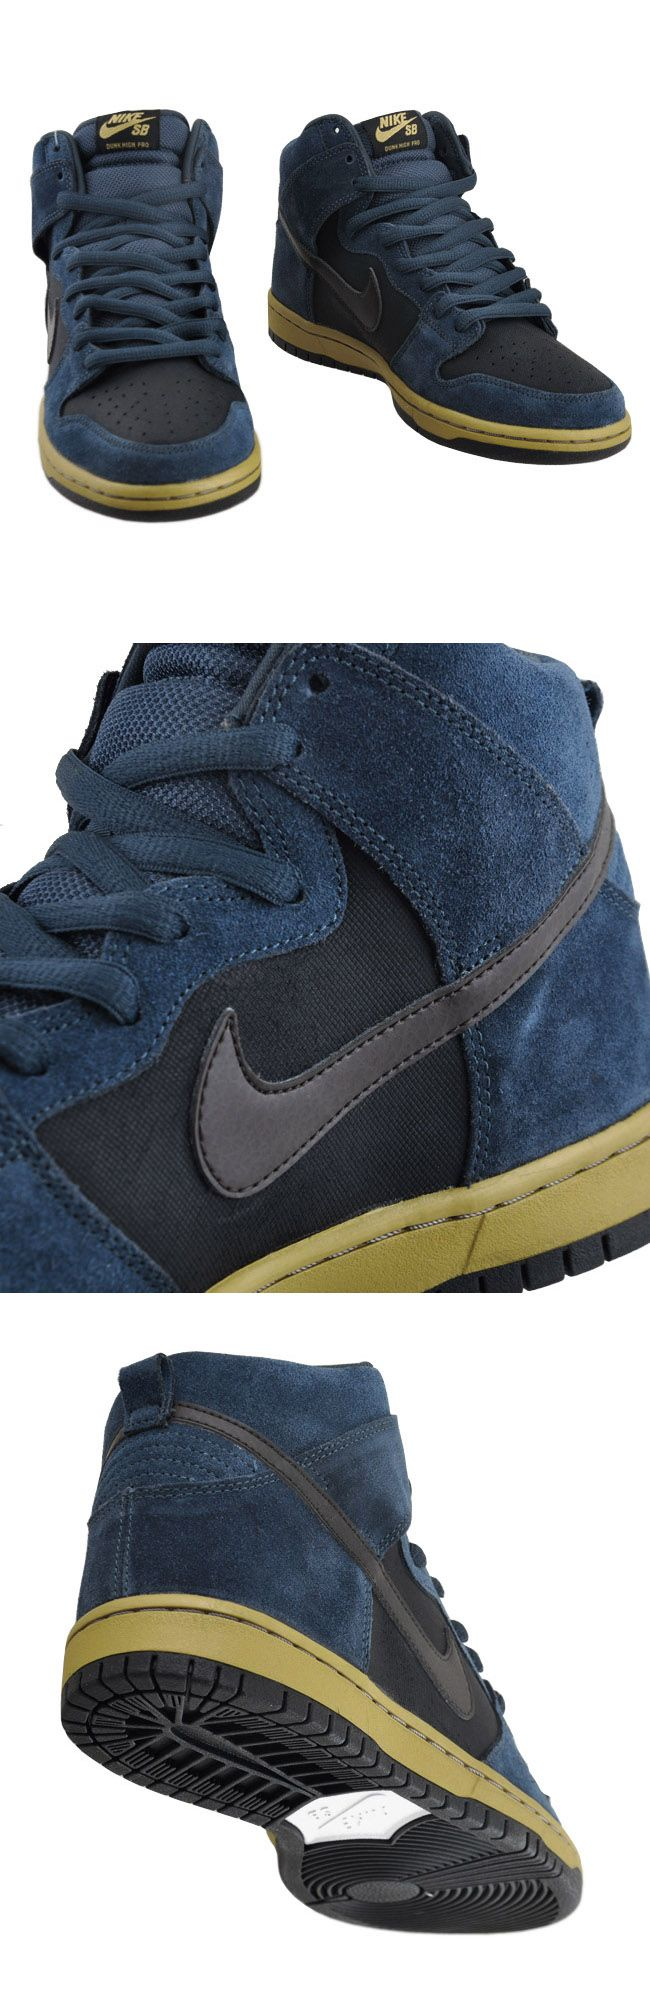 Nike SB Dunk High Navy/Gold.